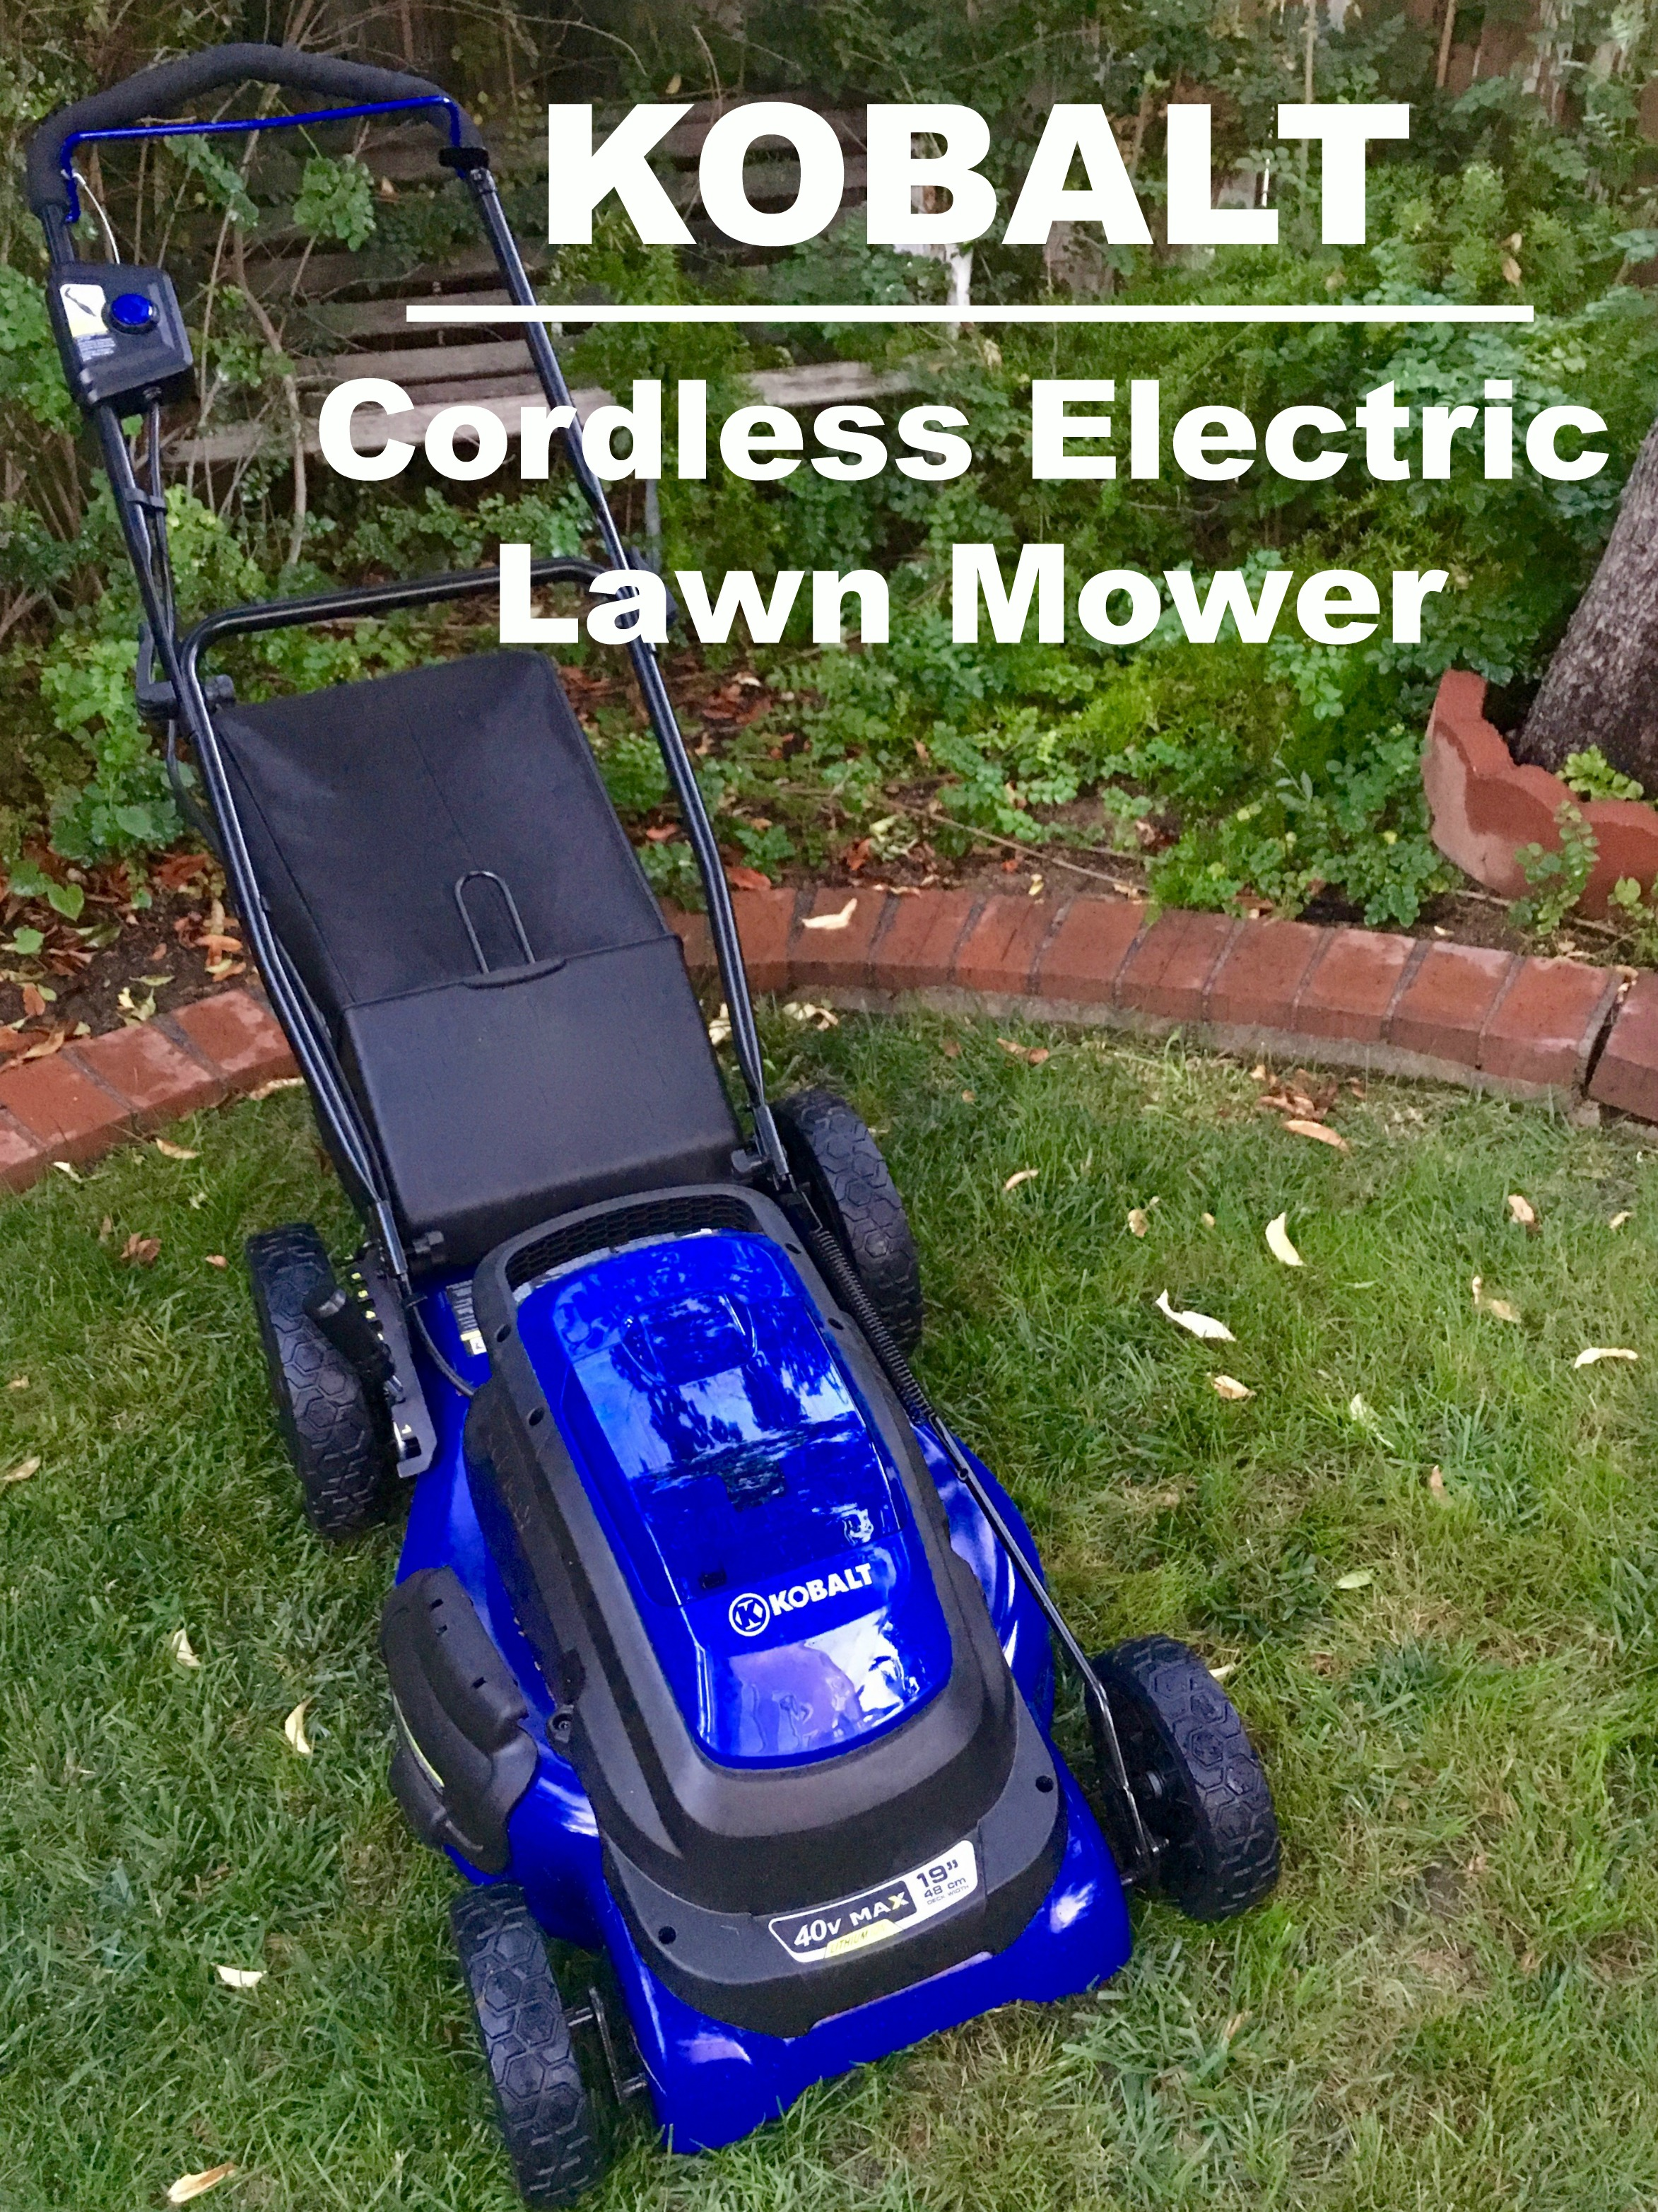 Living Green with the Kobalt Cordless Electric Lawn Mower